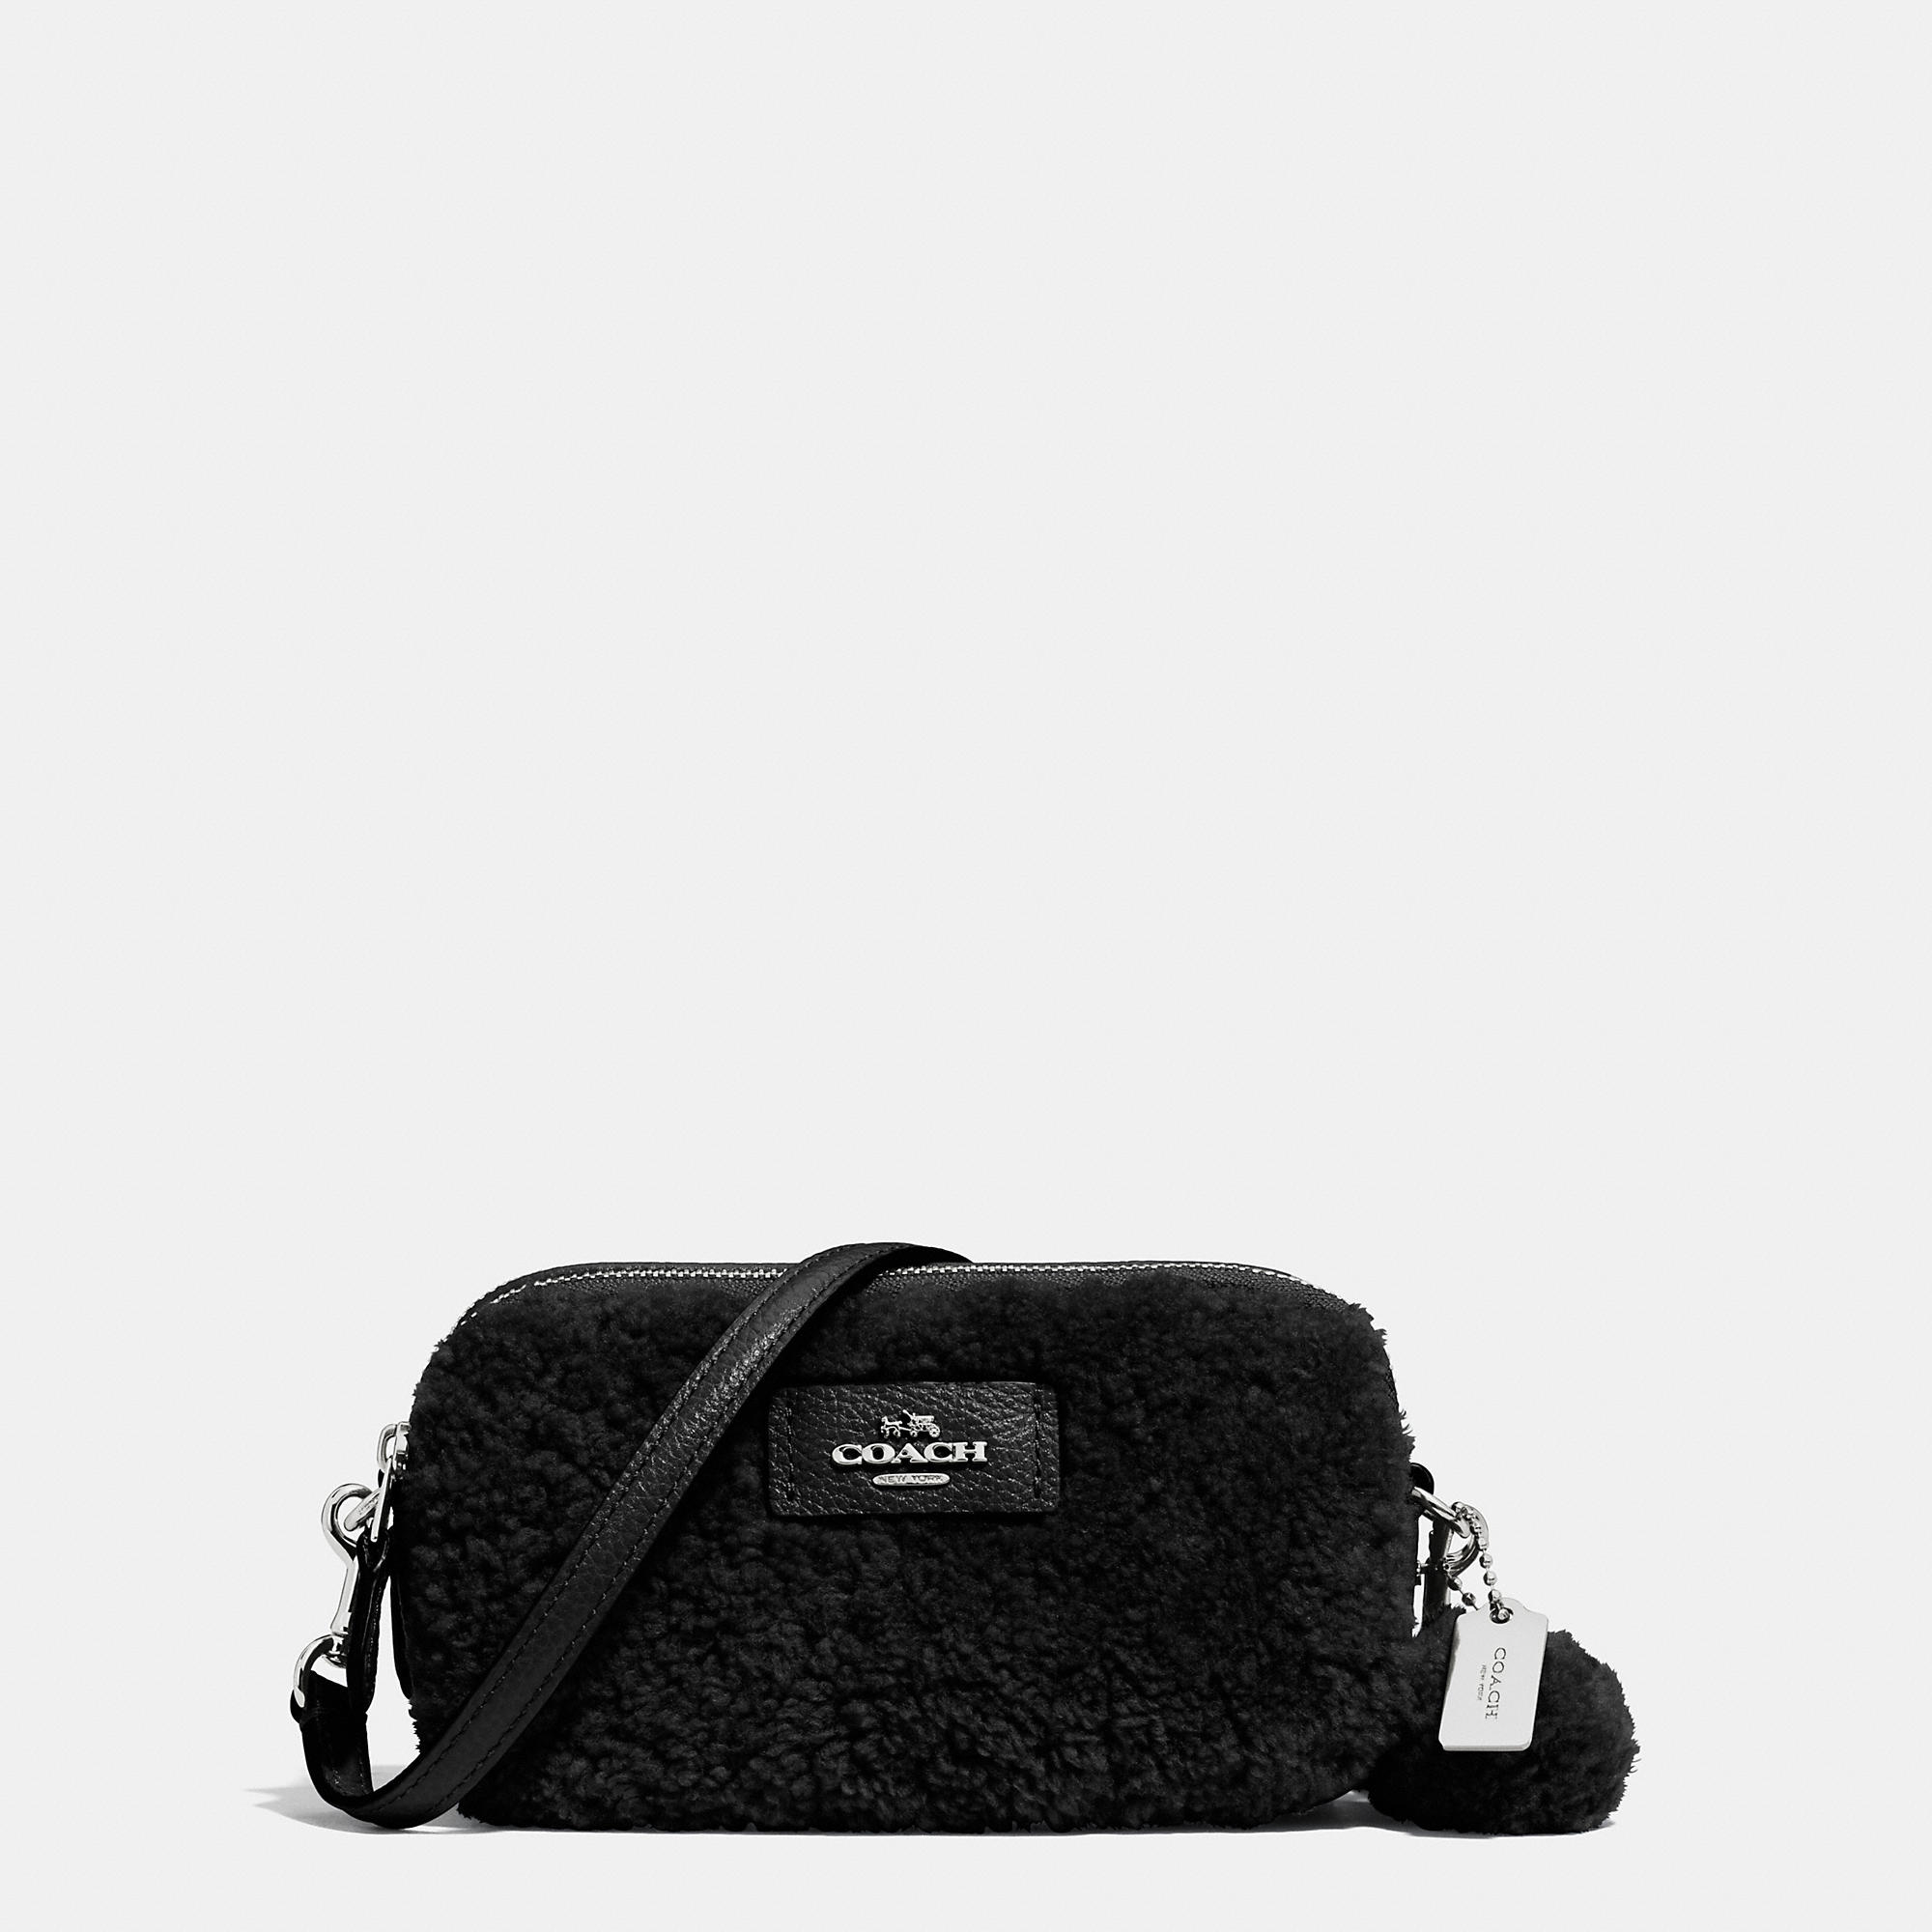 ... low price lyst coach small shearling cross body bag in black c20d5 75b71 3af31c27396b8